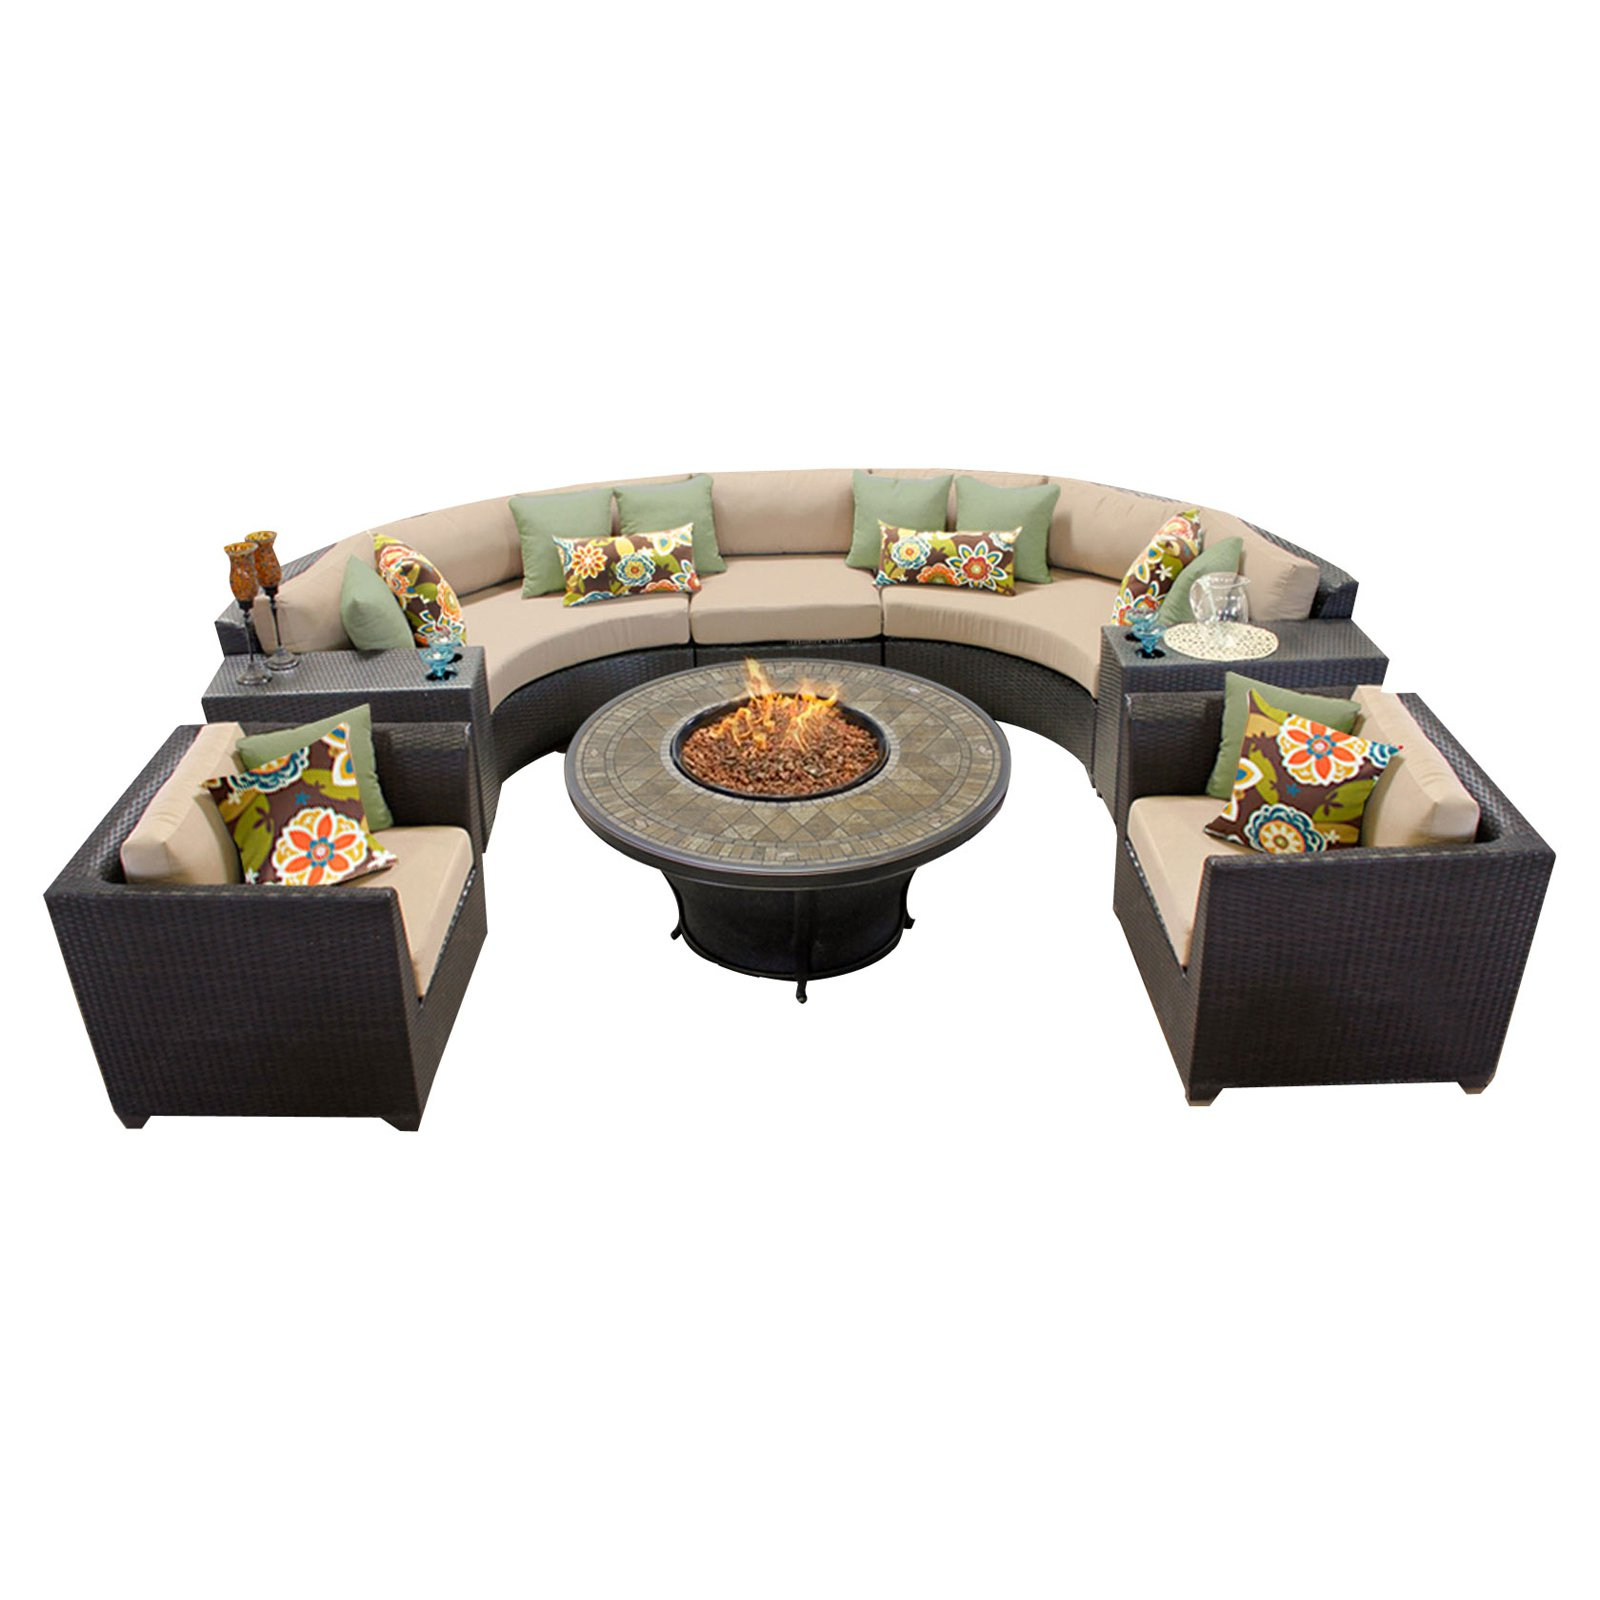 Famous Tegan Patio Sofas With Cushions Within Sol 72 Outdoor Tegan 8 Piece Sectional Seating Group With (View 20 of 25)